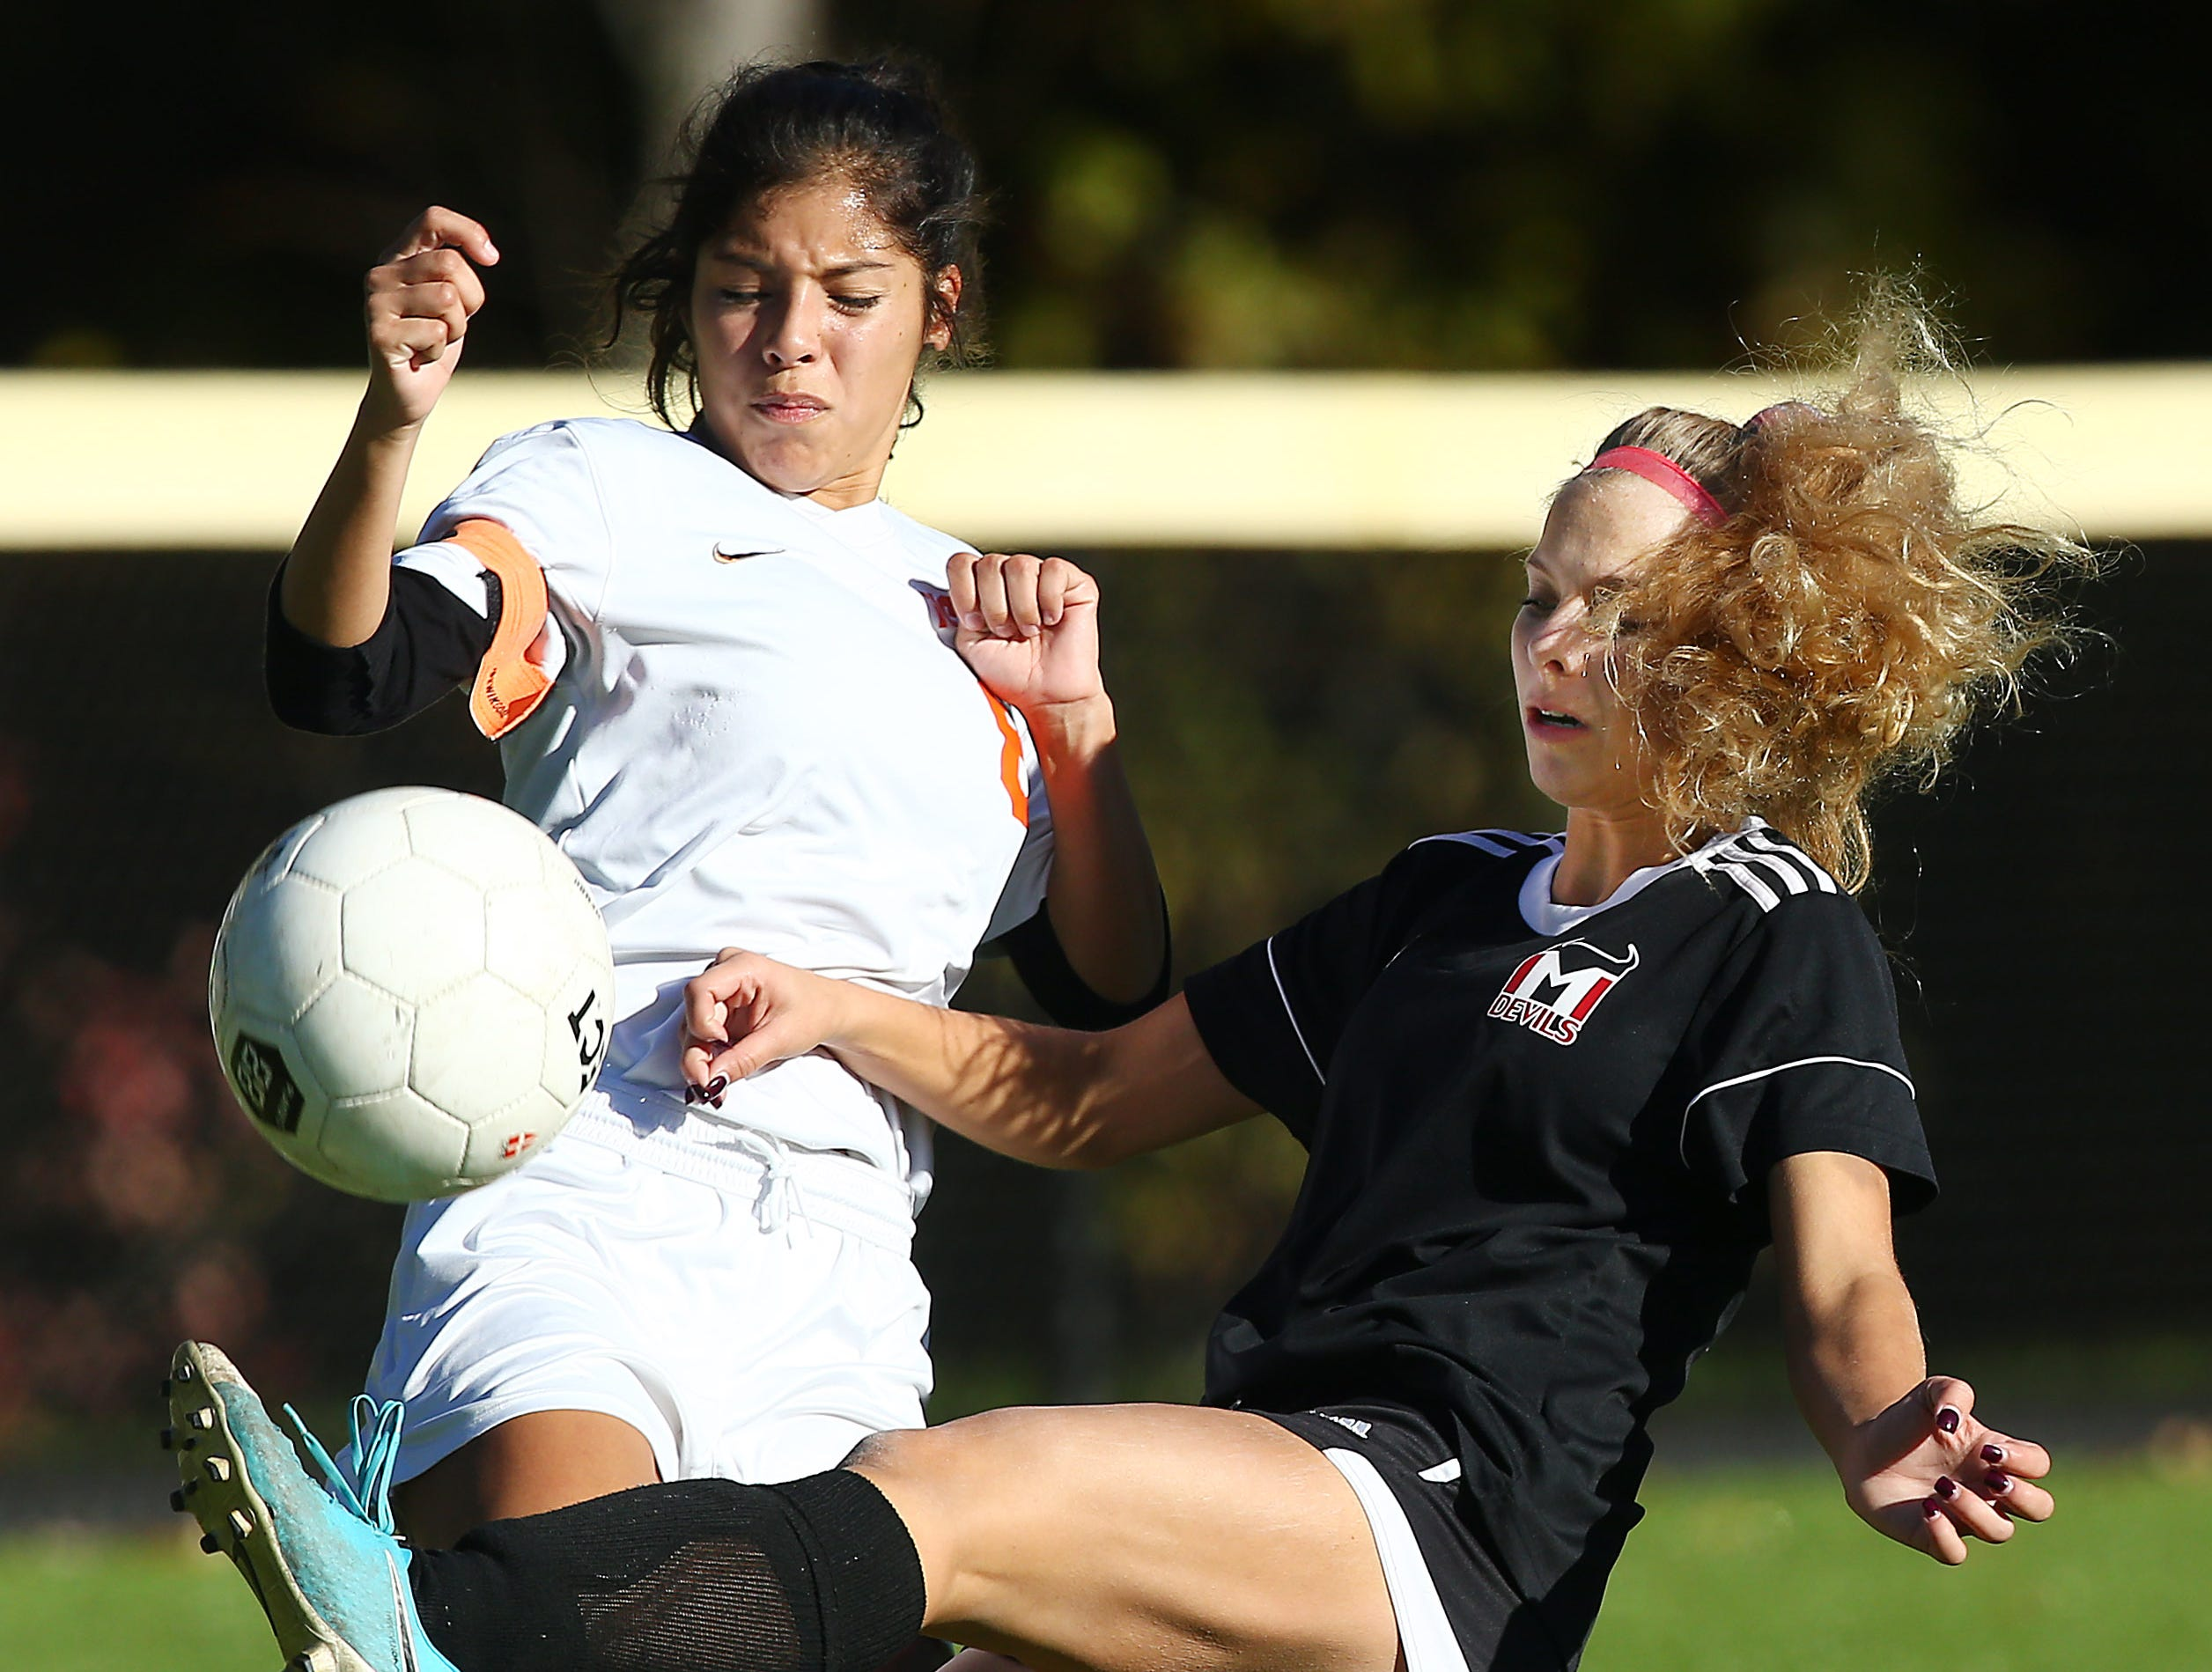 Morris Tech's Julia Gronda controls the ball vs. Dover defender Edith Rubio during their NJSIAA North 2 Group II opening round girls soccer match at Veterans Memorial Park. October 30, 2018, Denville, NJ